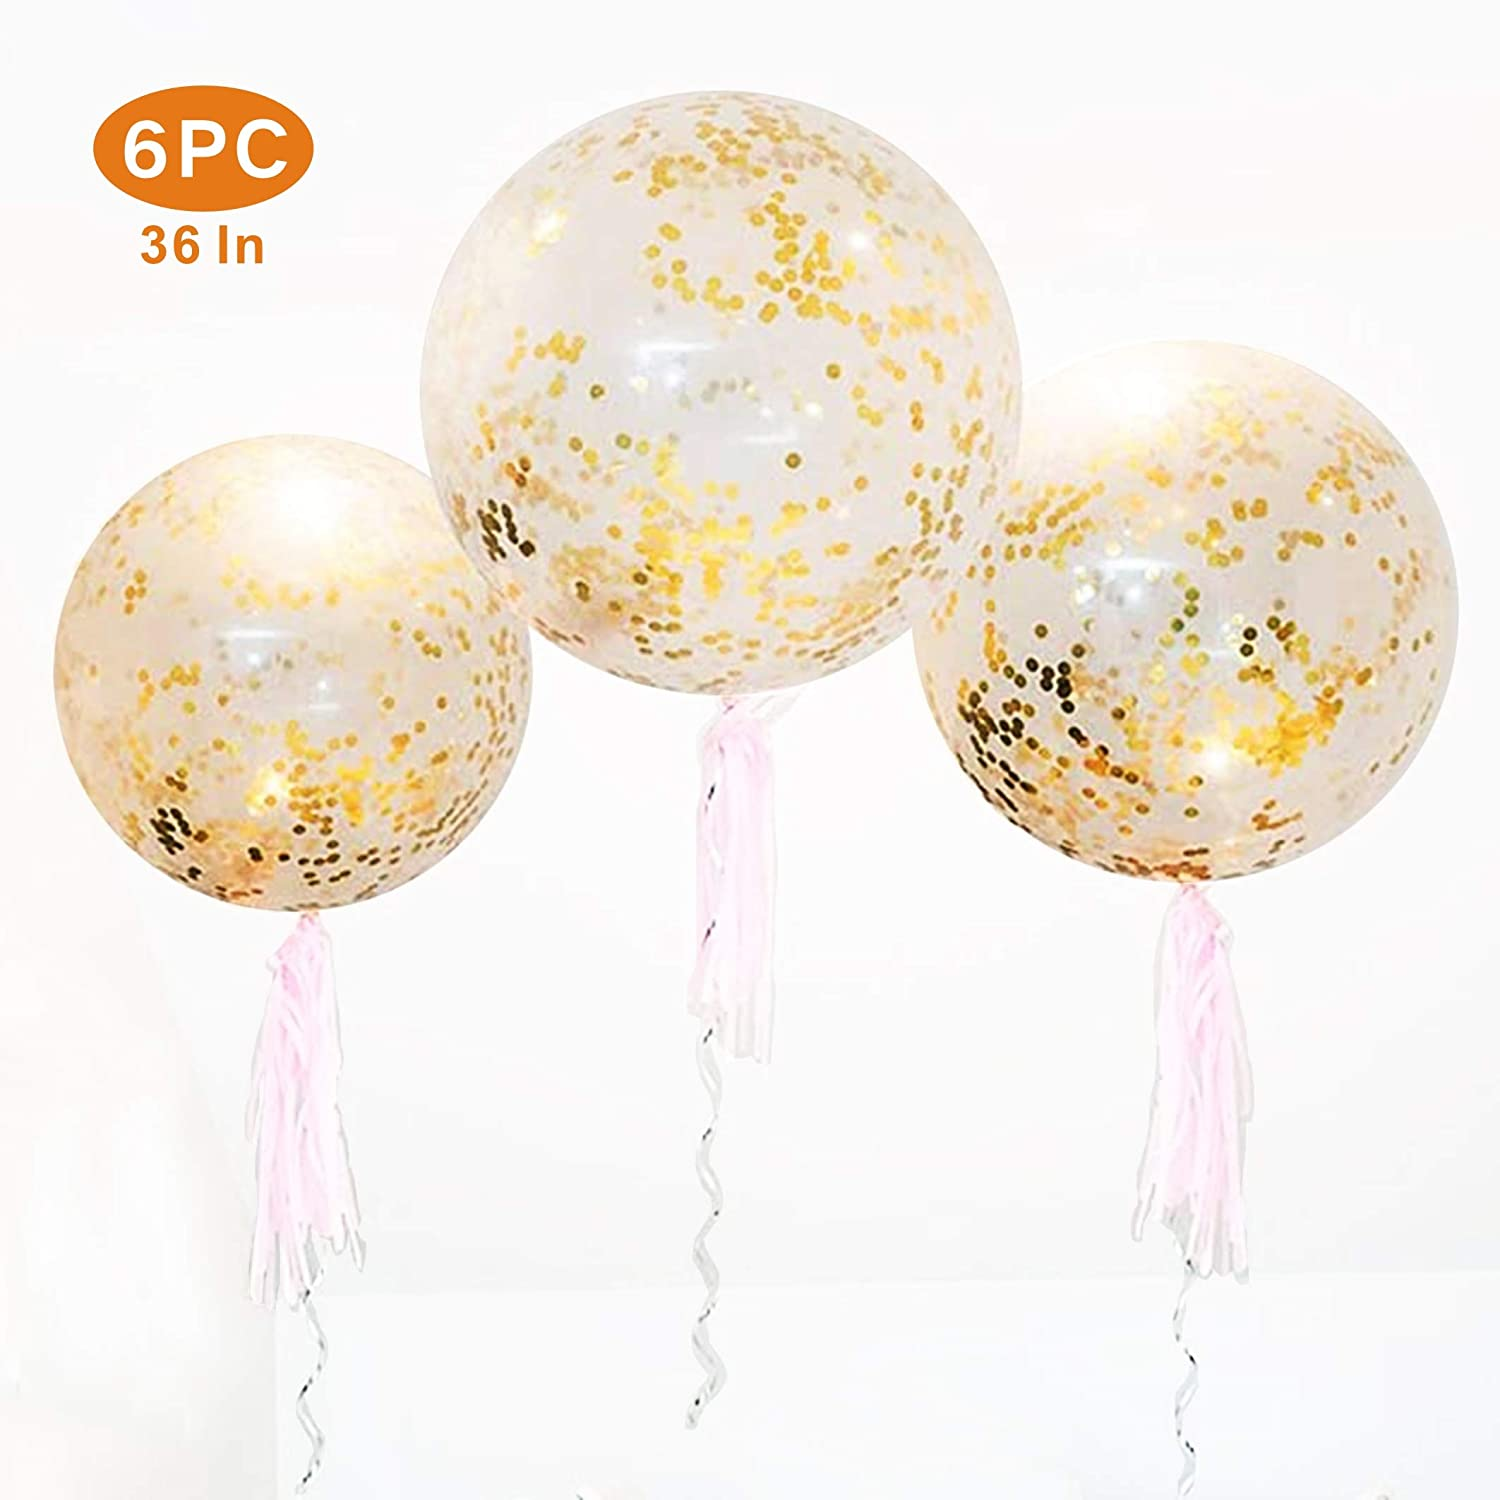 36 Inch Jumbo Confetti Balloons, Giant Latex Balloon with Gold Confetti (Premium Helium Quality) Pkg/6 Latex Glitter Balloons for Party/Birthdays /Wedding/Festivals Christmas and Event Decorations CCGGAD